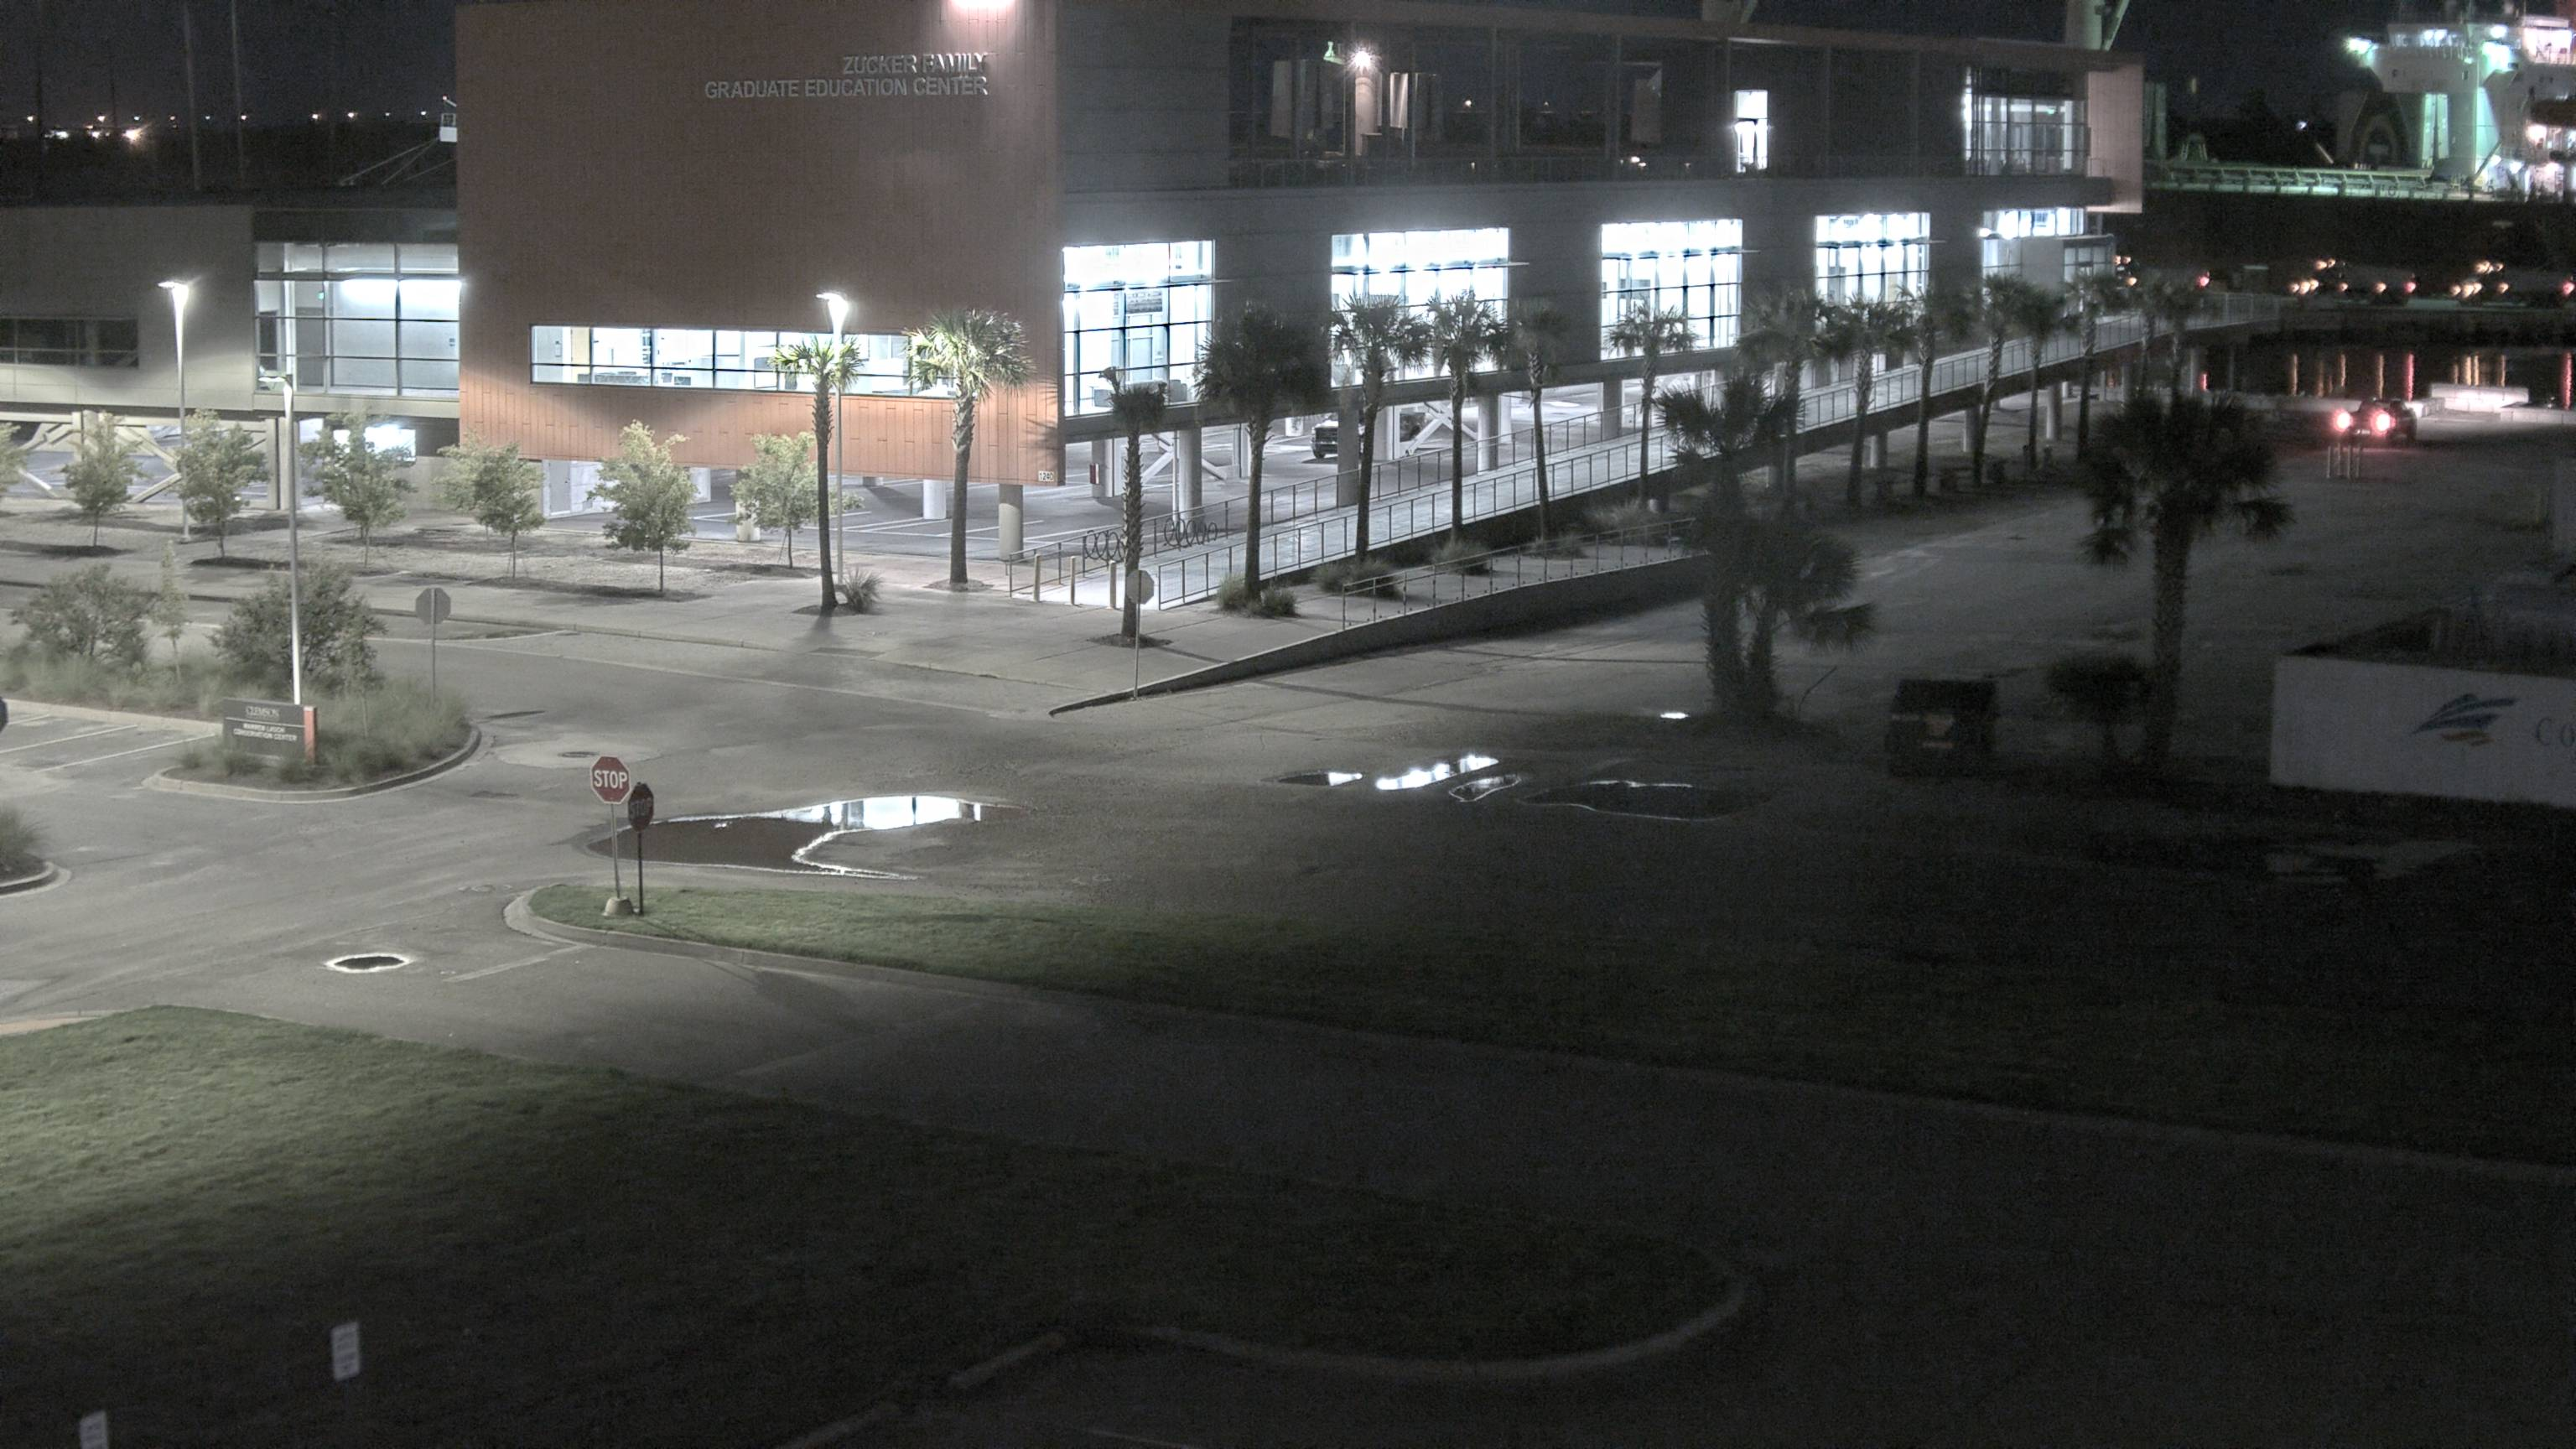 Clemson University Webcam - Zucker Family Graduate Education Center, N. Charleston, SC